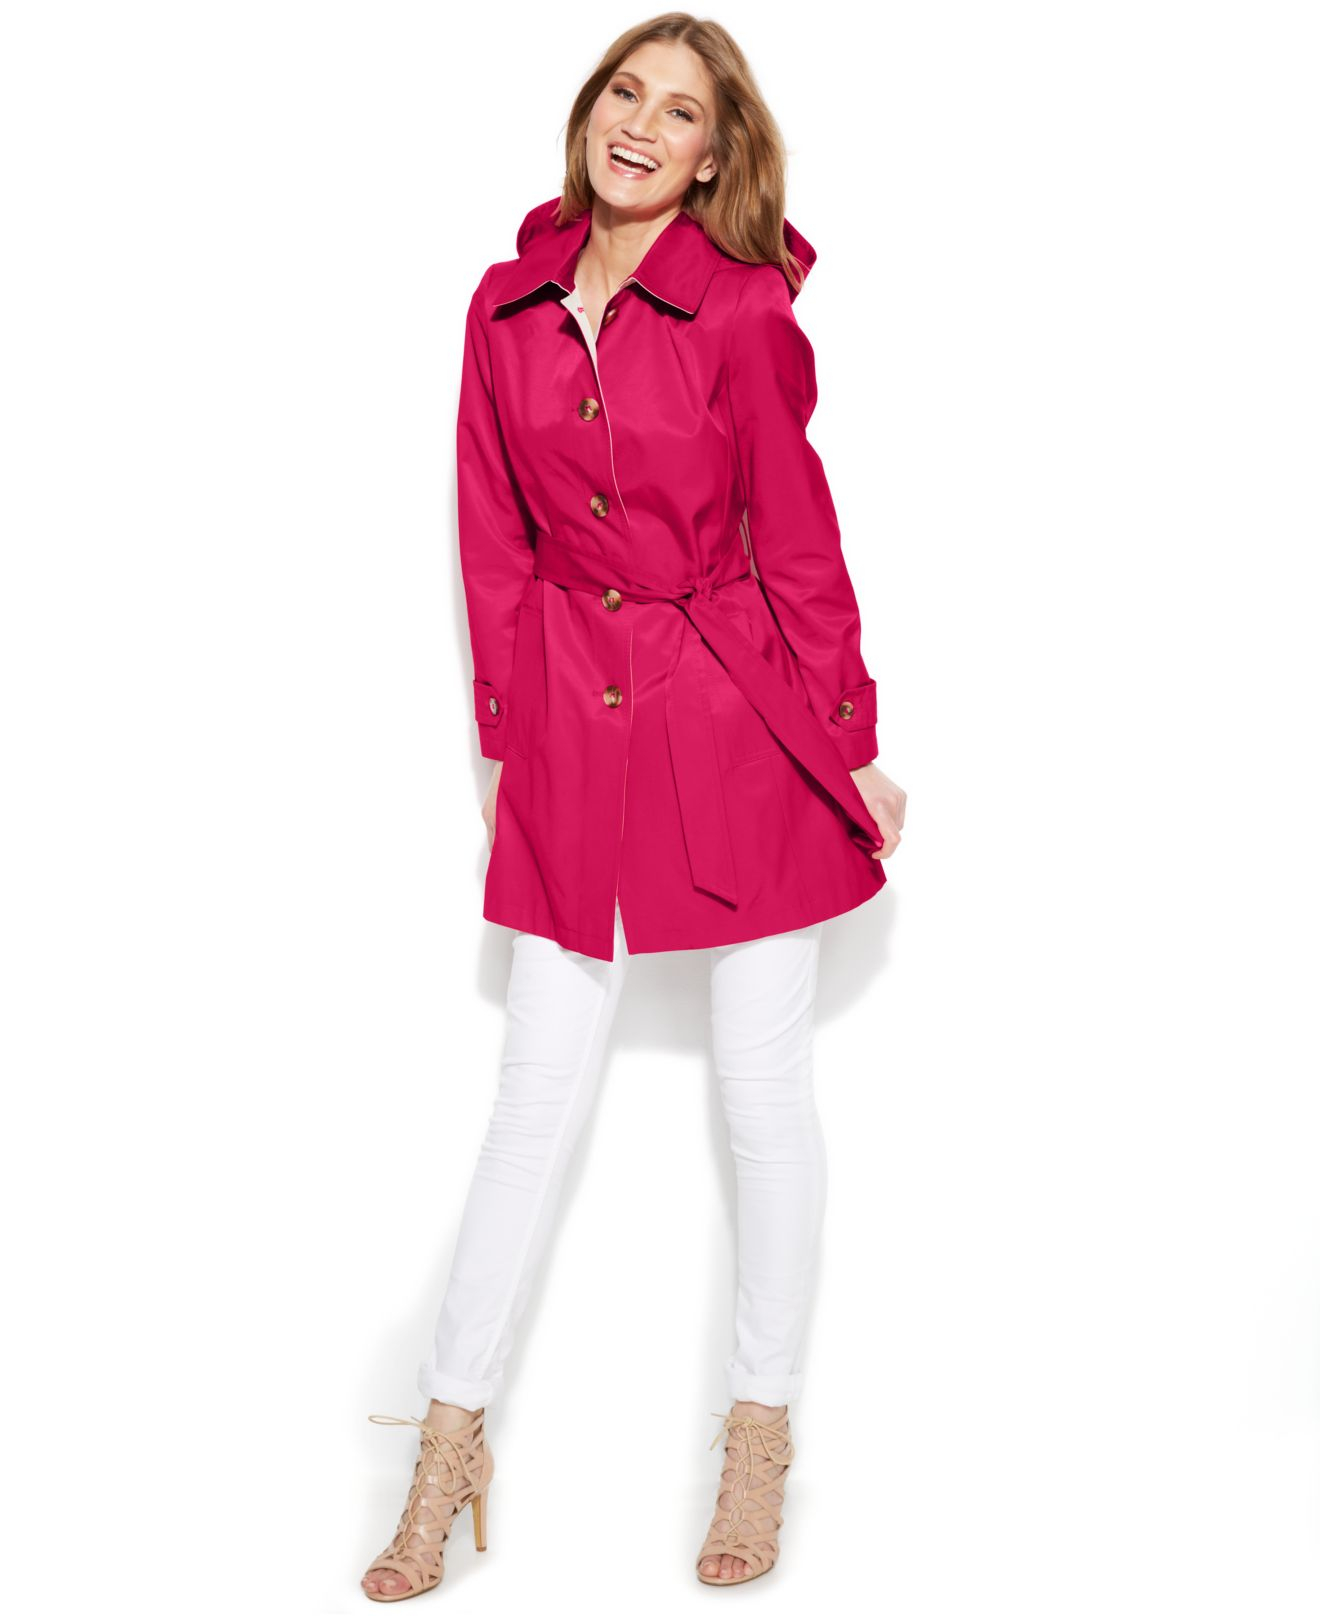 Dkny Buttoned Trench Coat in Pink | Lyst